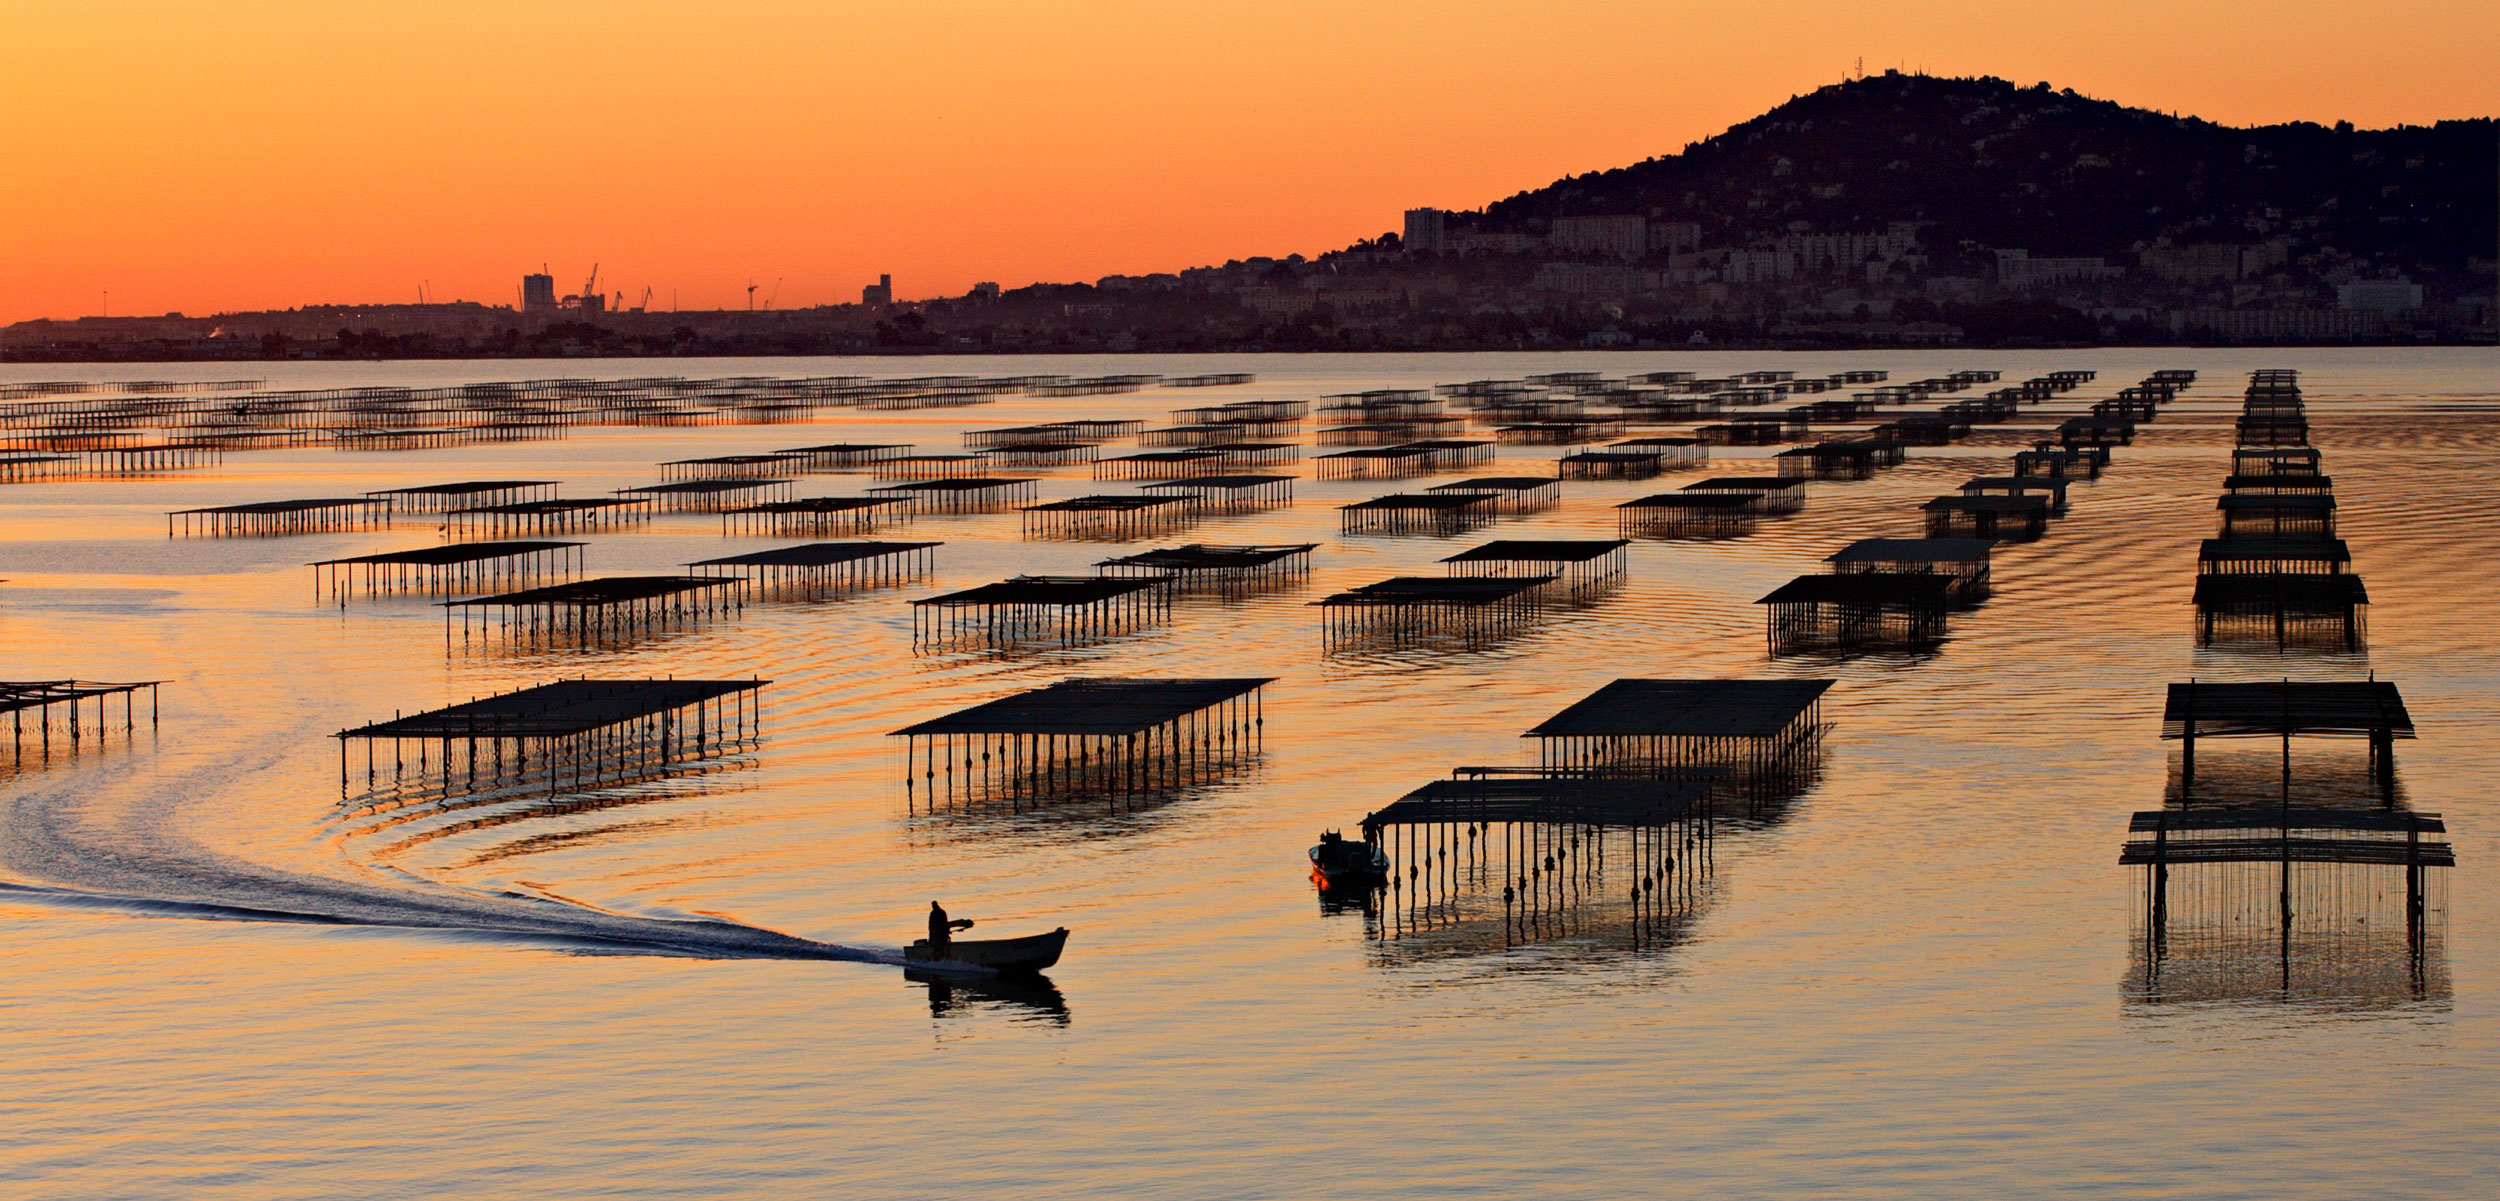 Etang de Thau and oyster farming in Languedoc Roussillon, France